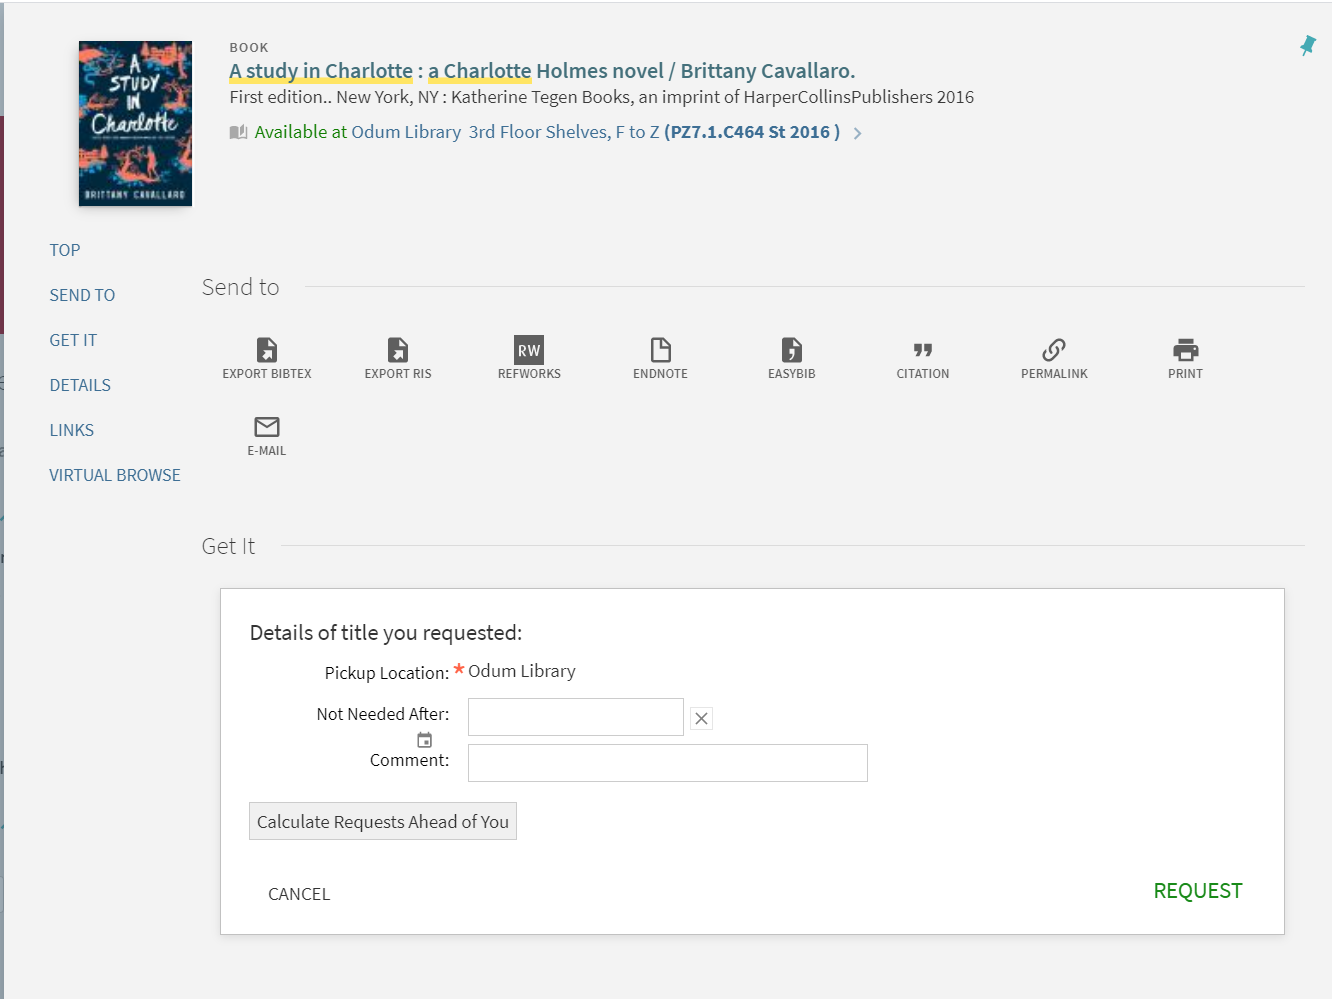 Request Options form once you select Request button under Get It